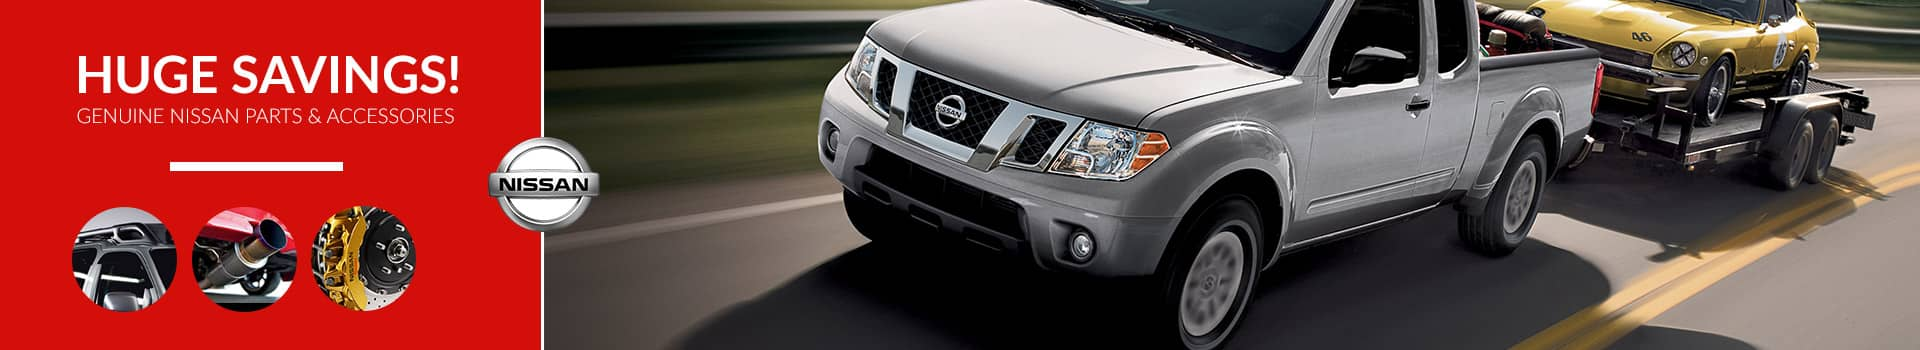 Save on Nissan parts and accessories